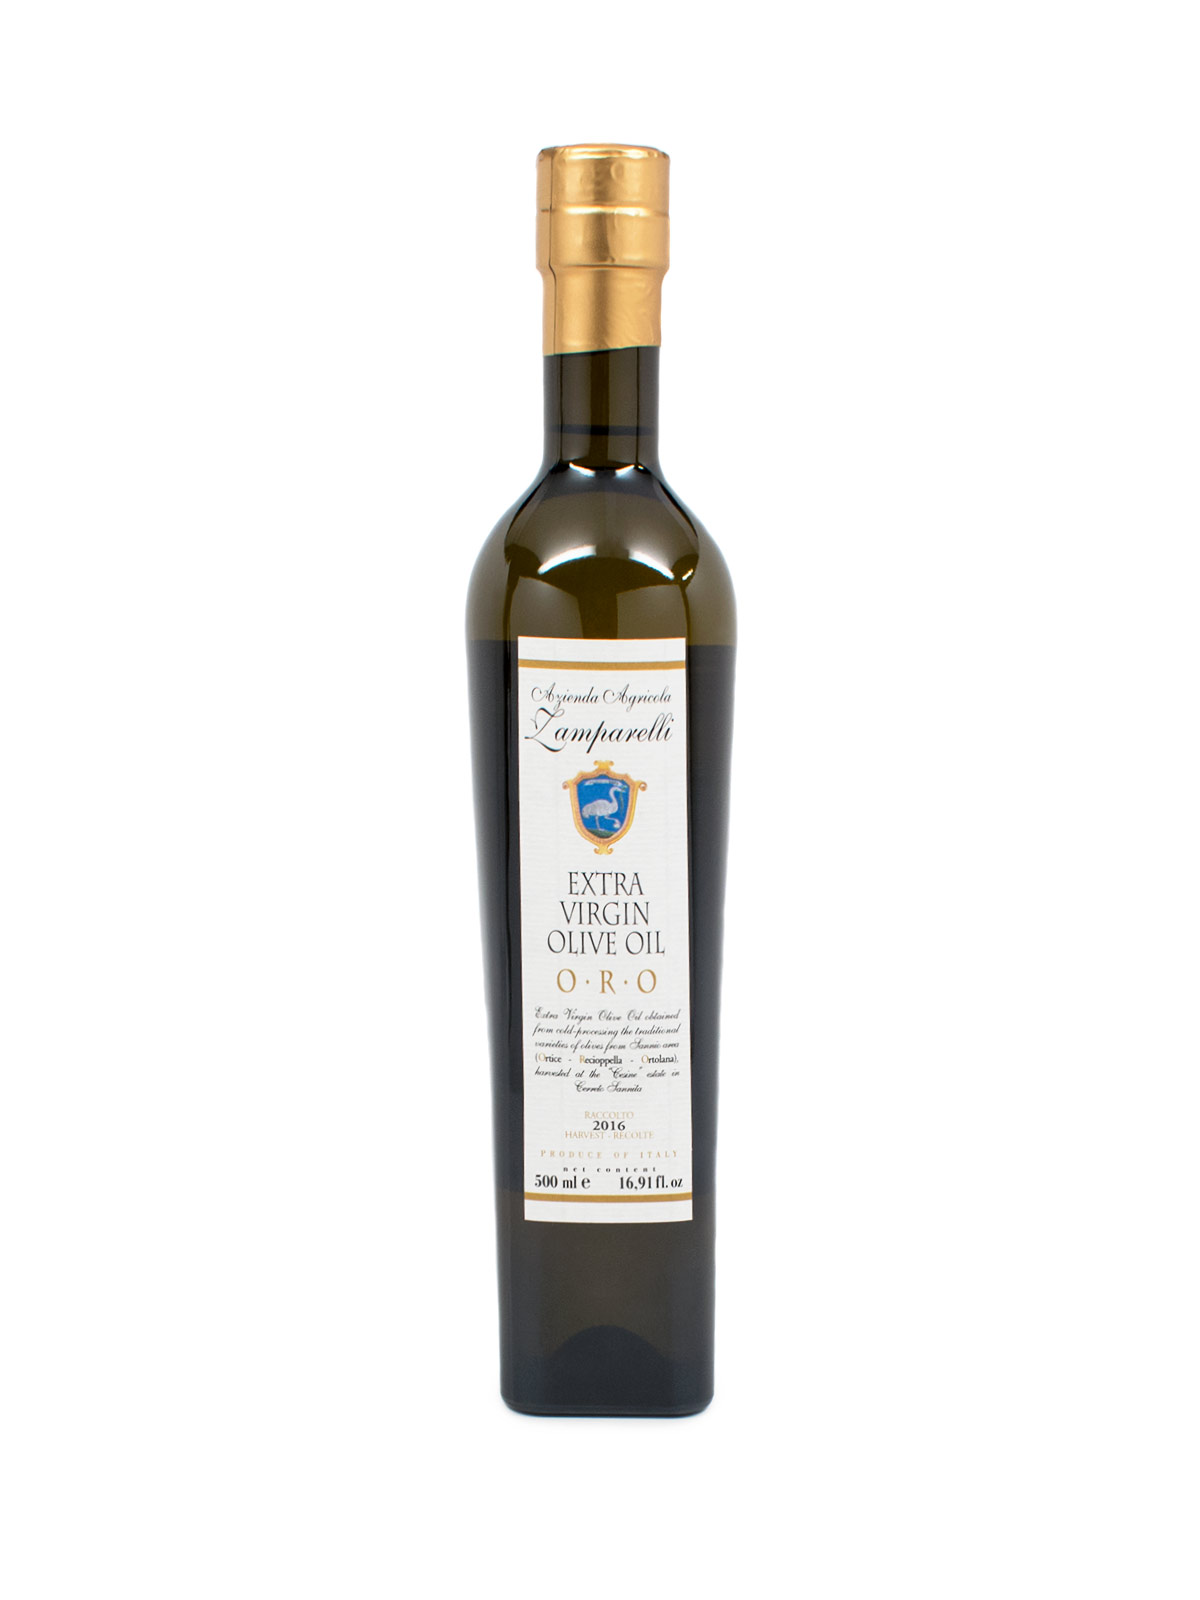 Zamparelli Oro Extra Virgin Olive Oil - Oils & Vinegars - Buon'Italia